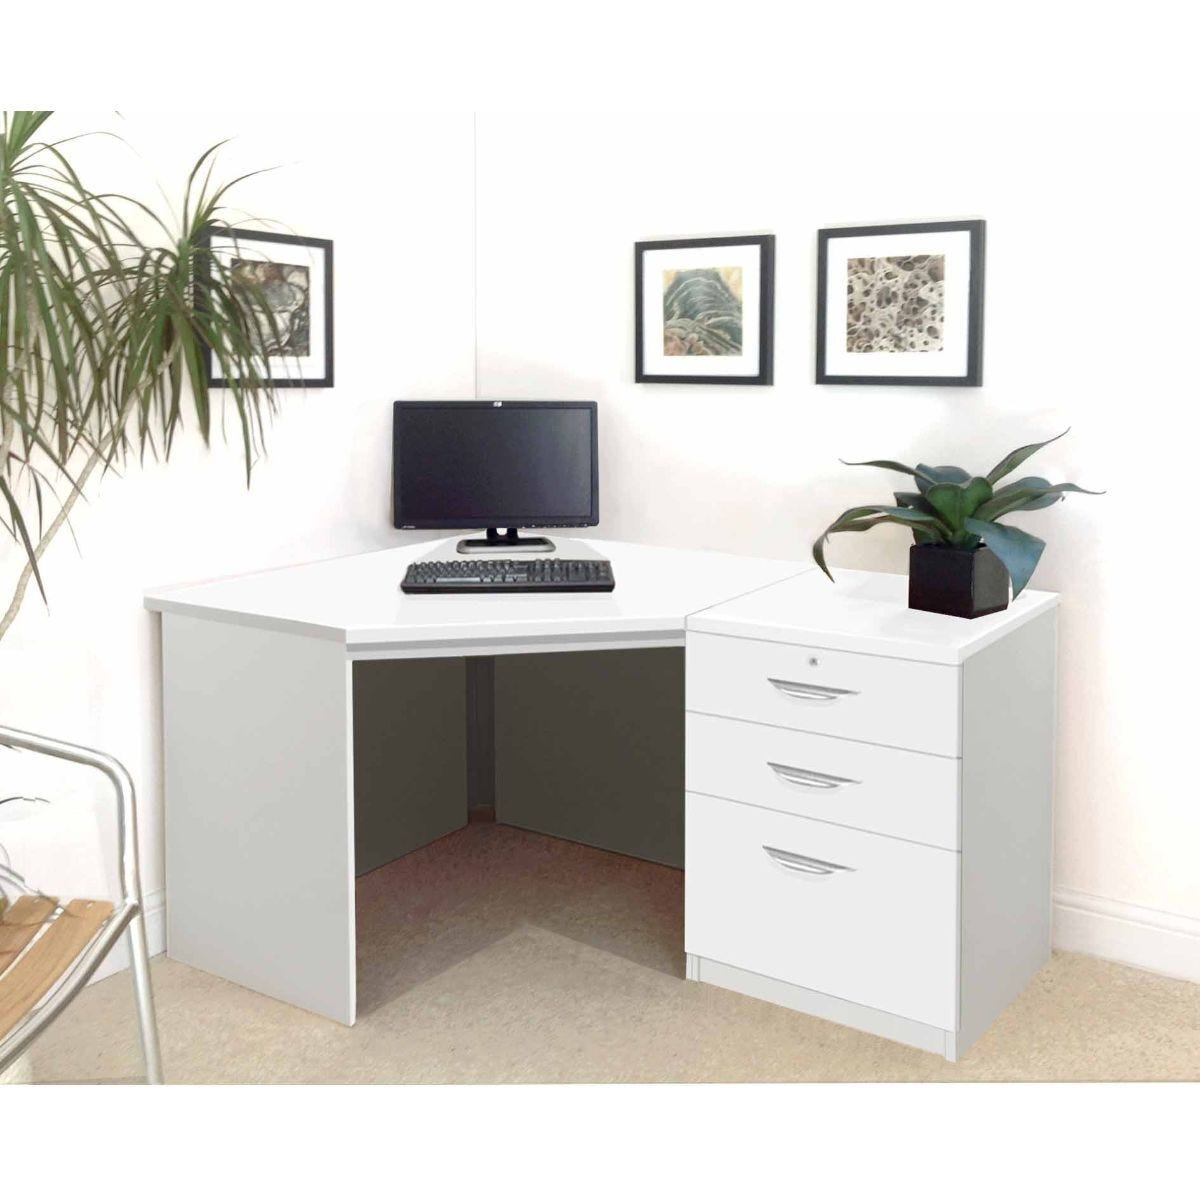 R White Home Office Corner Desk with Three Drawers White